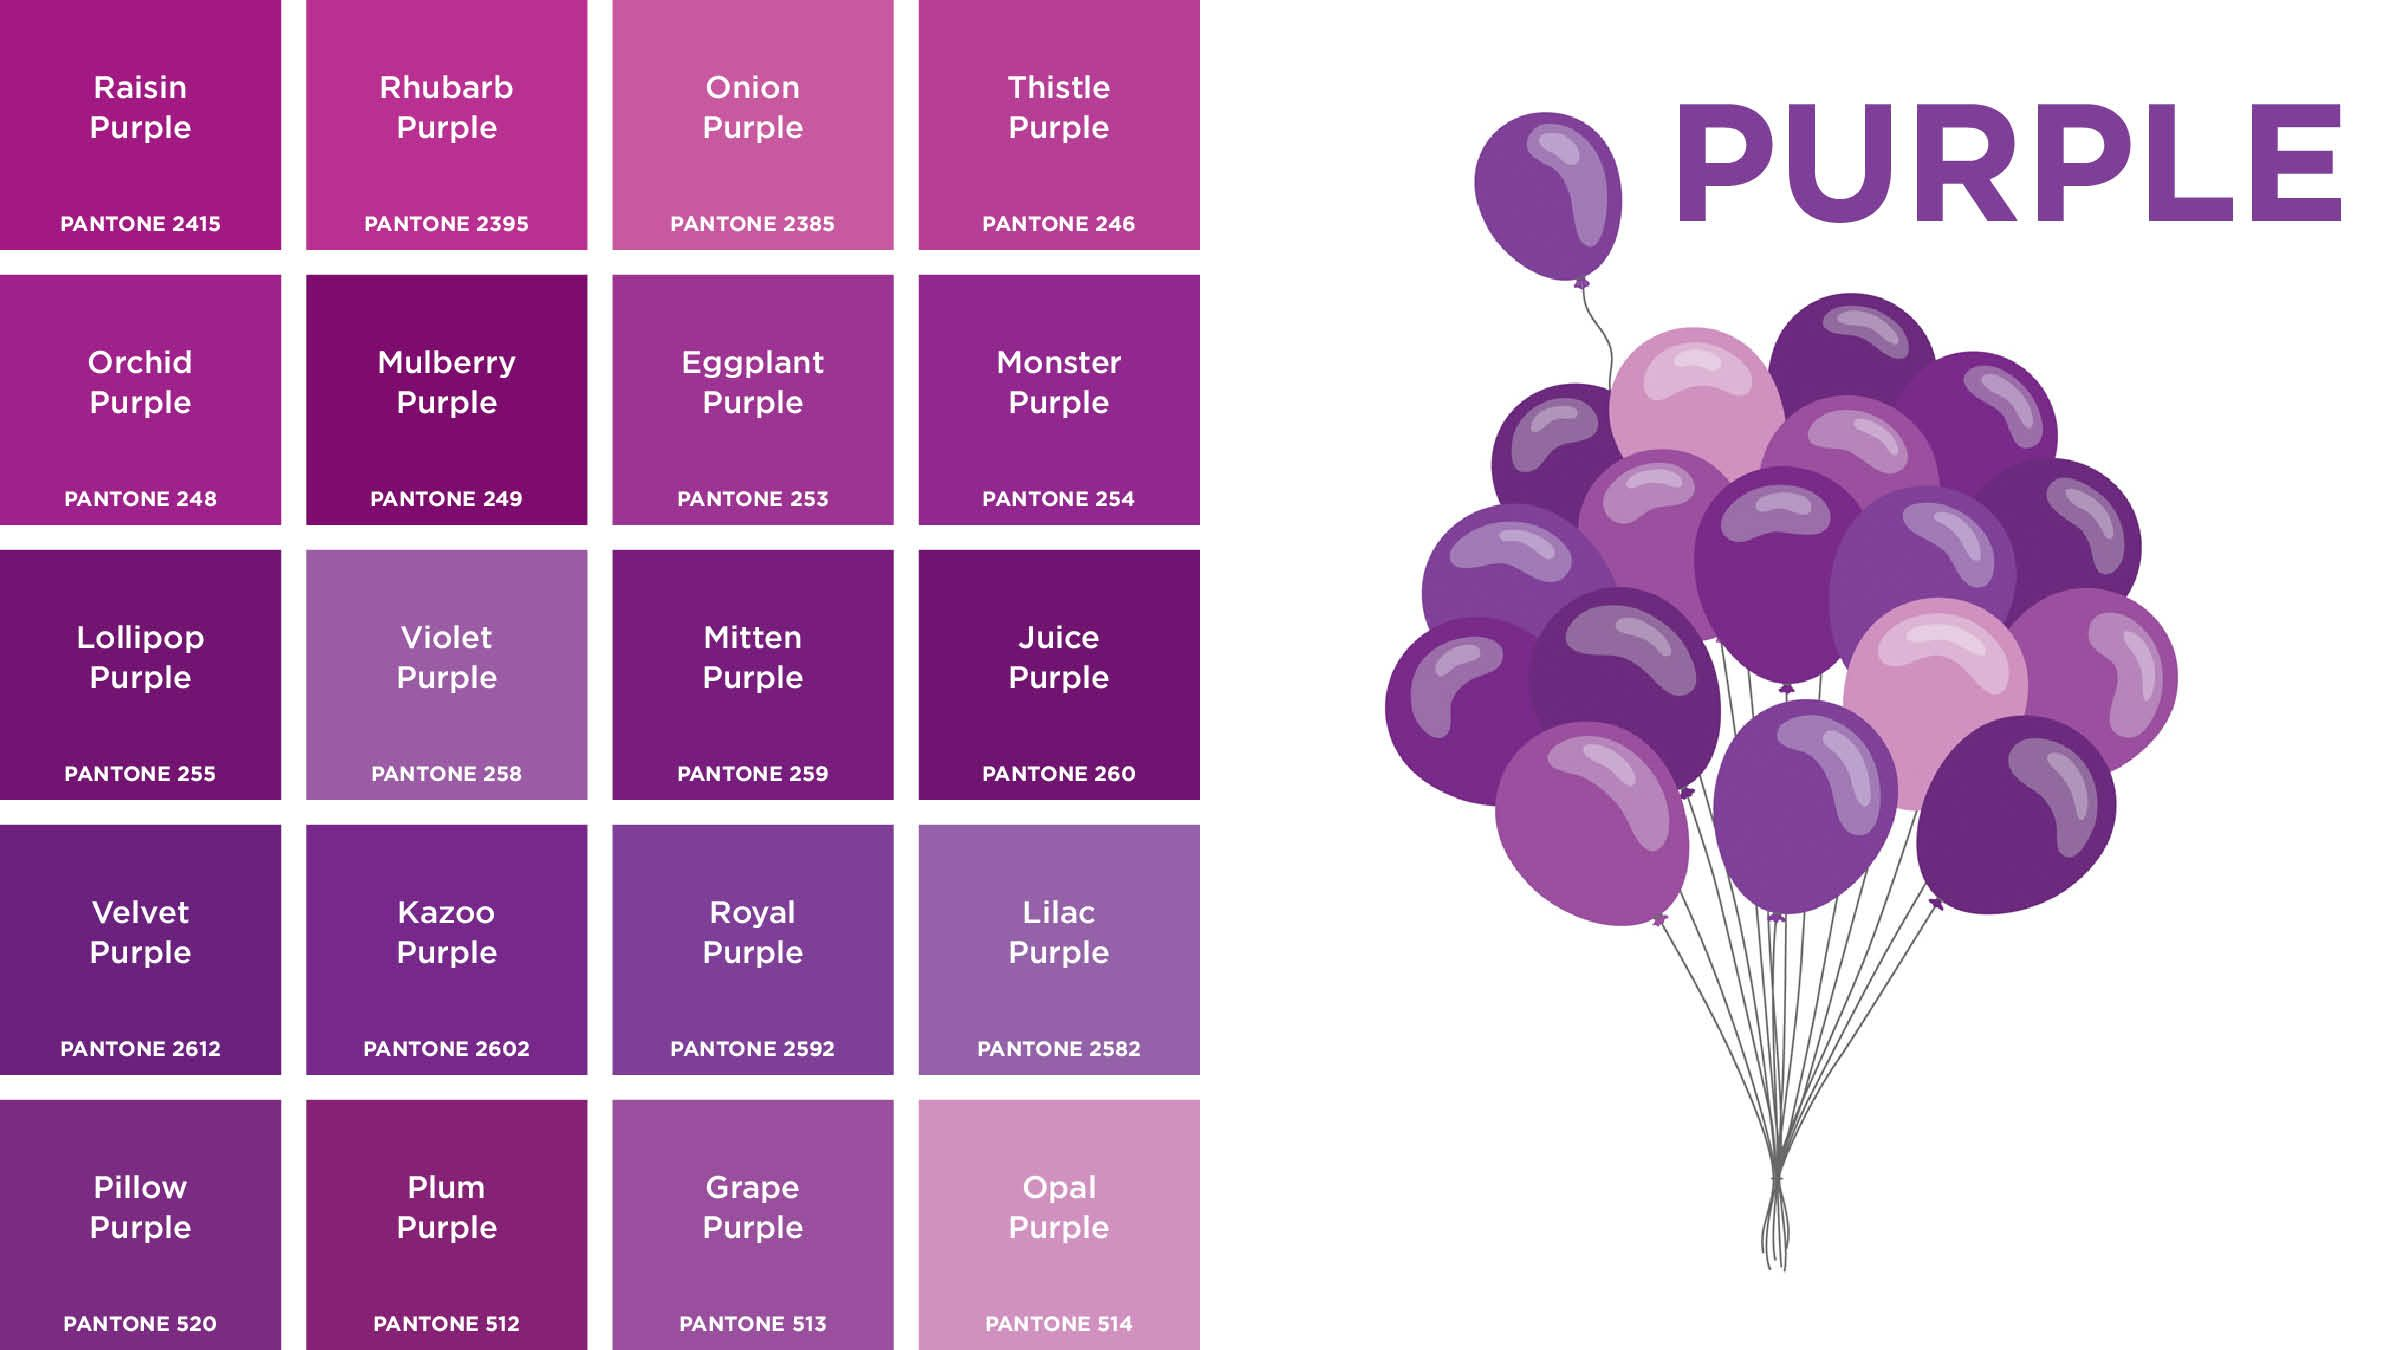 Shades Of Purple Names Images